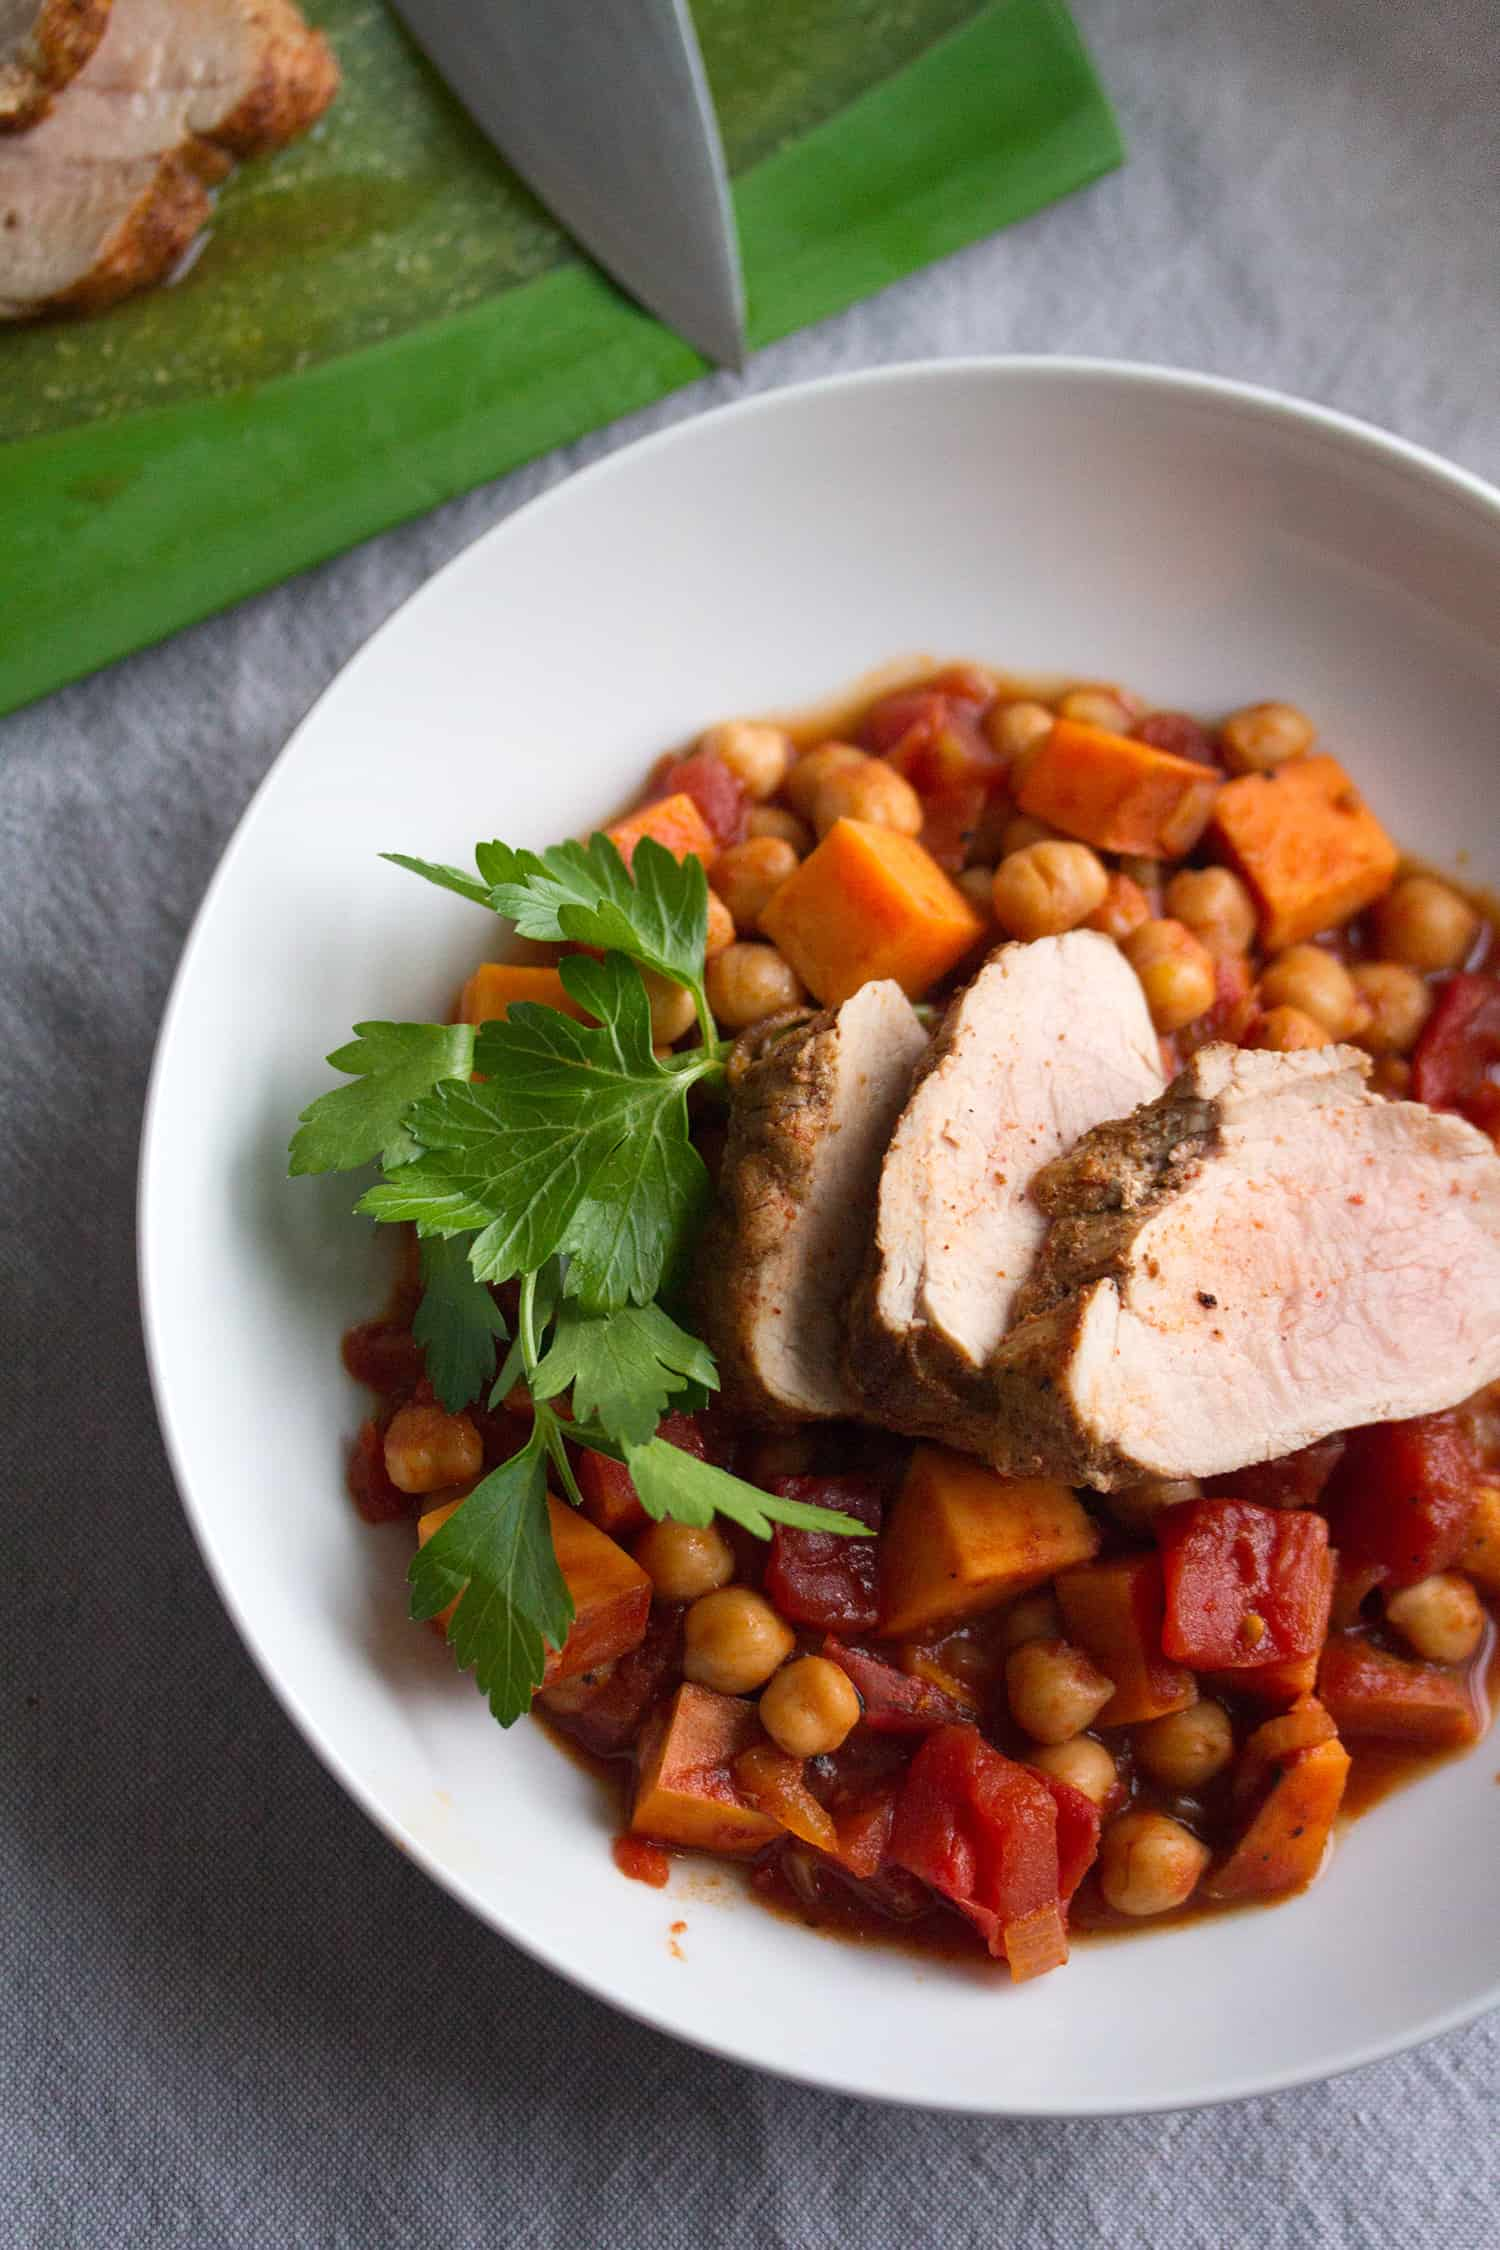 For Ariel: Roast Pork Tenderloin with Spicy Chickpea Stew